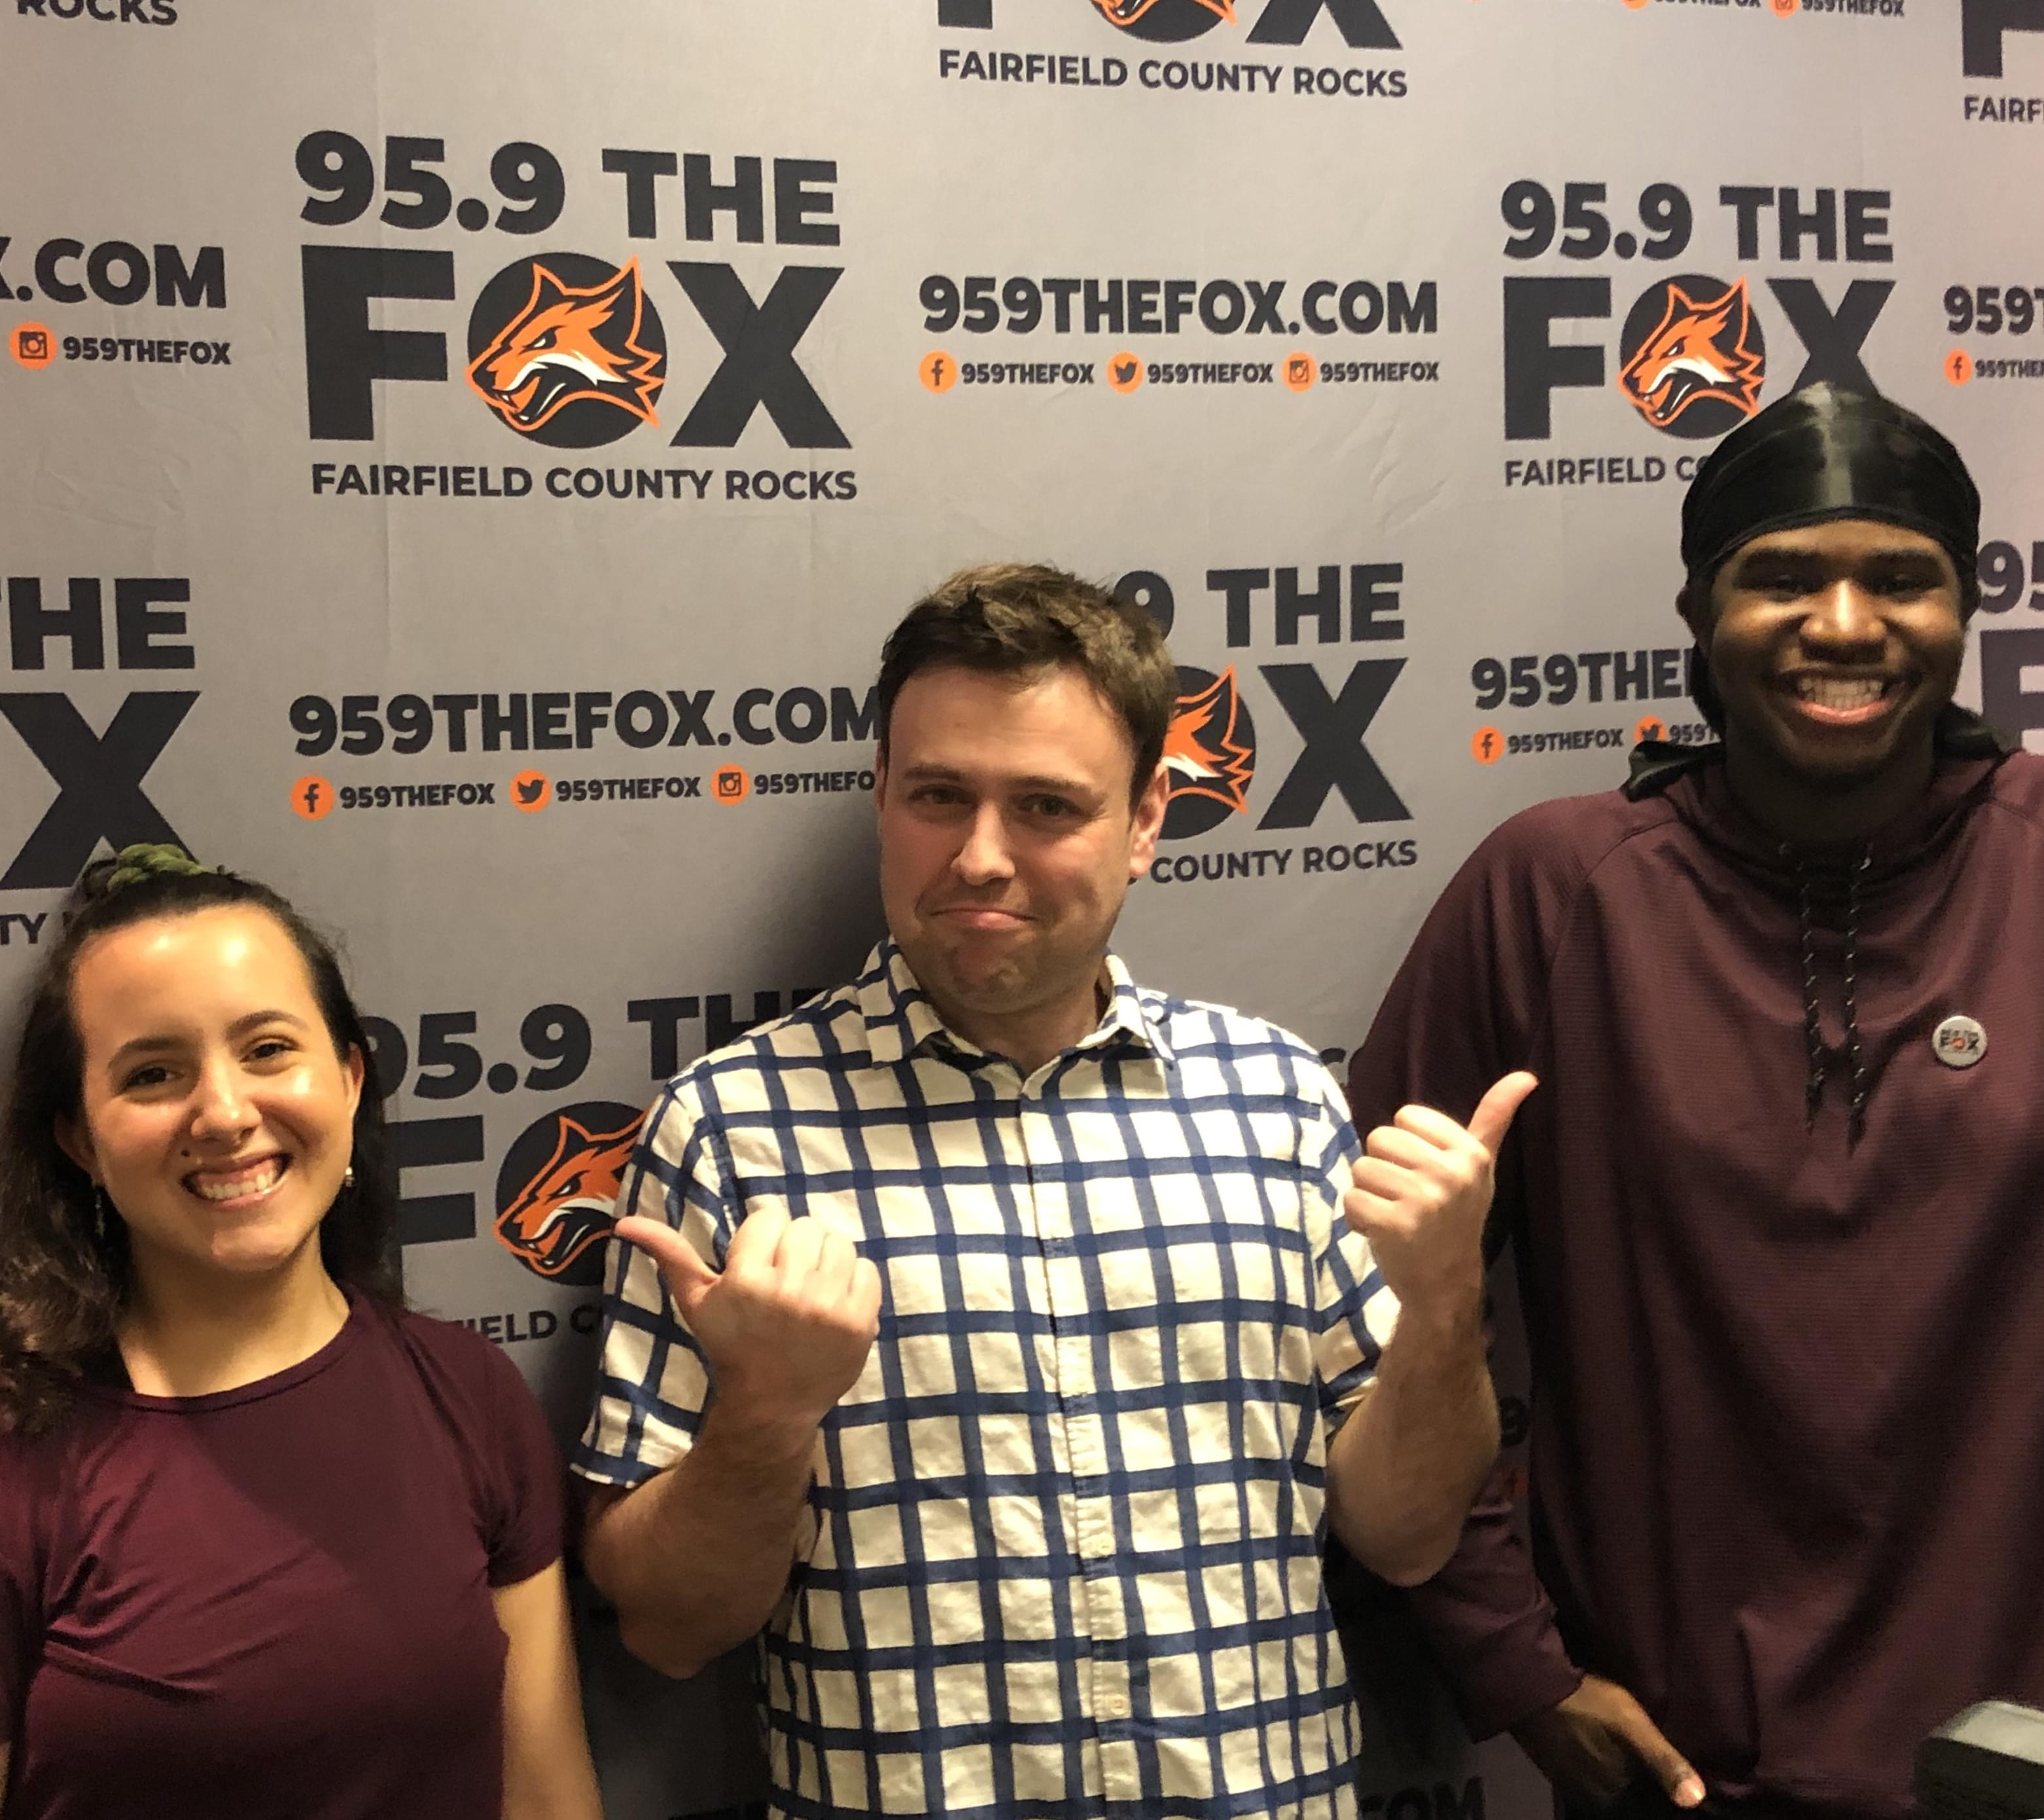 PODCAST: RCA Student Musicians Sarah And Christian